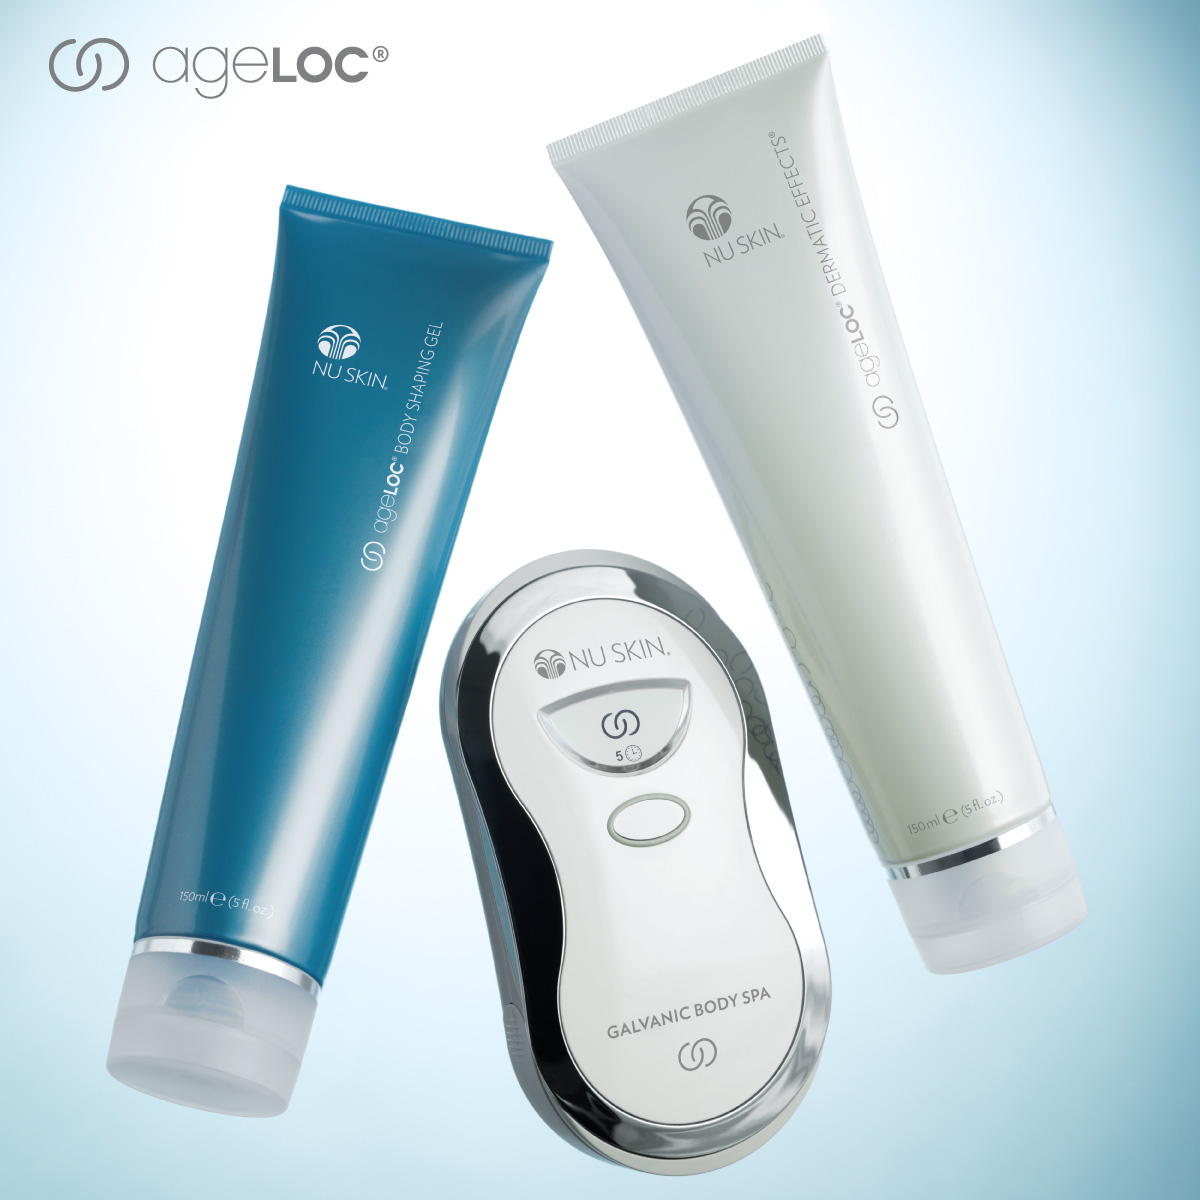 Ageloc Galvanic Body Spa, Body Shaping Gel, Dermatic Effect